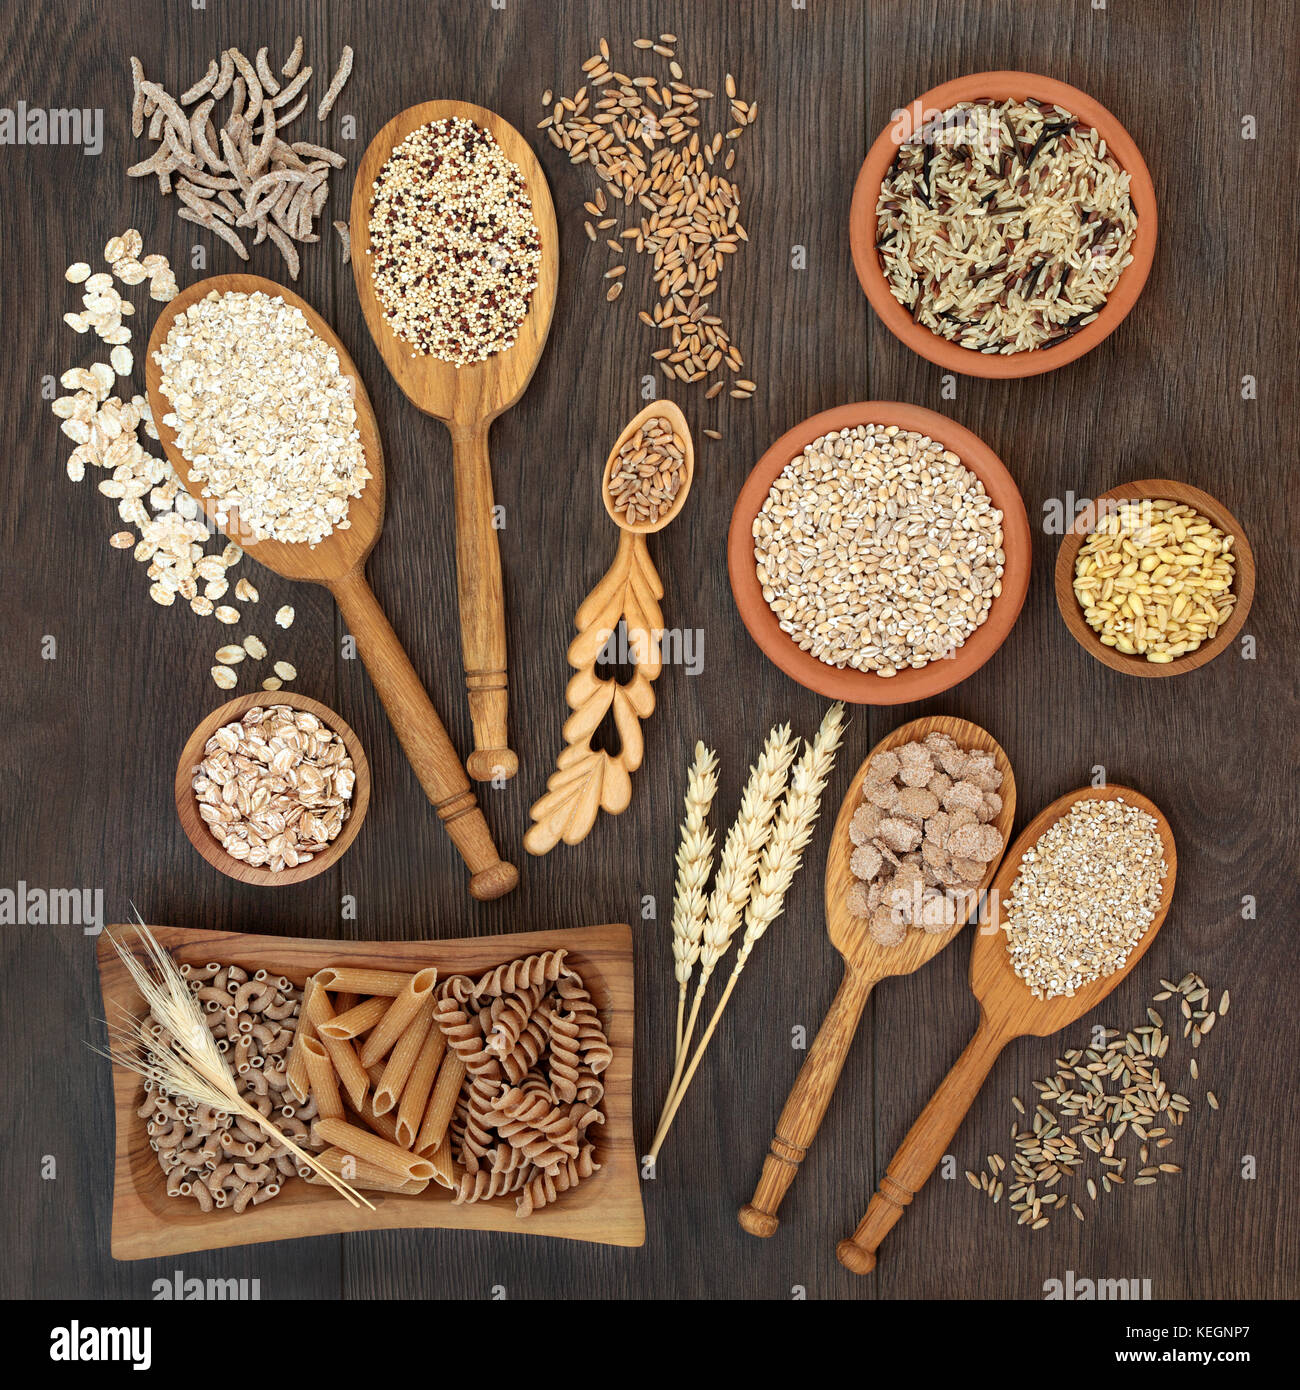 High fiber health food of whole wheat pasta, cereal and grains in bowls and spoons on rustic oak background. - Stock Image